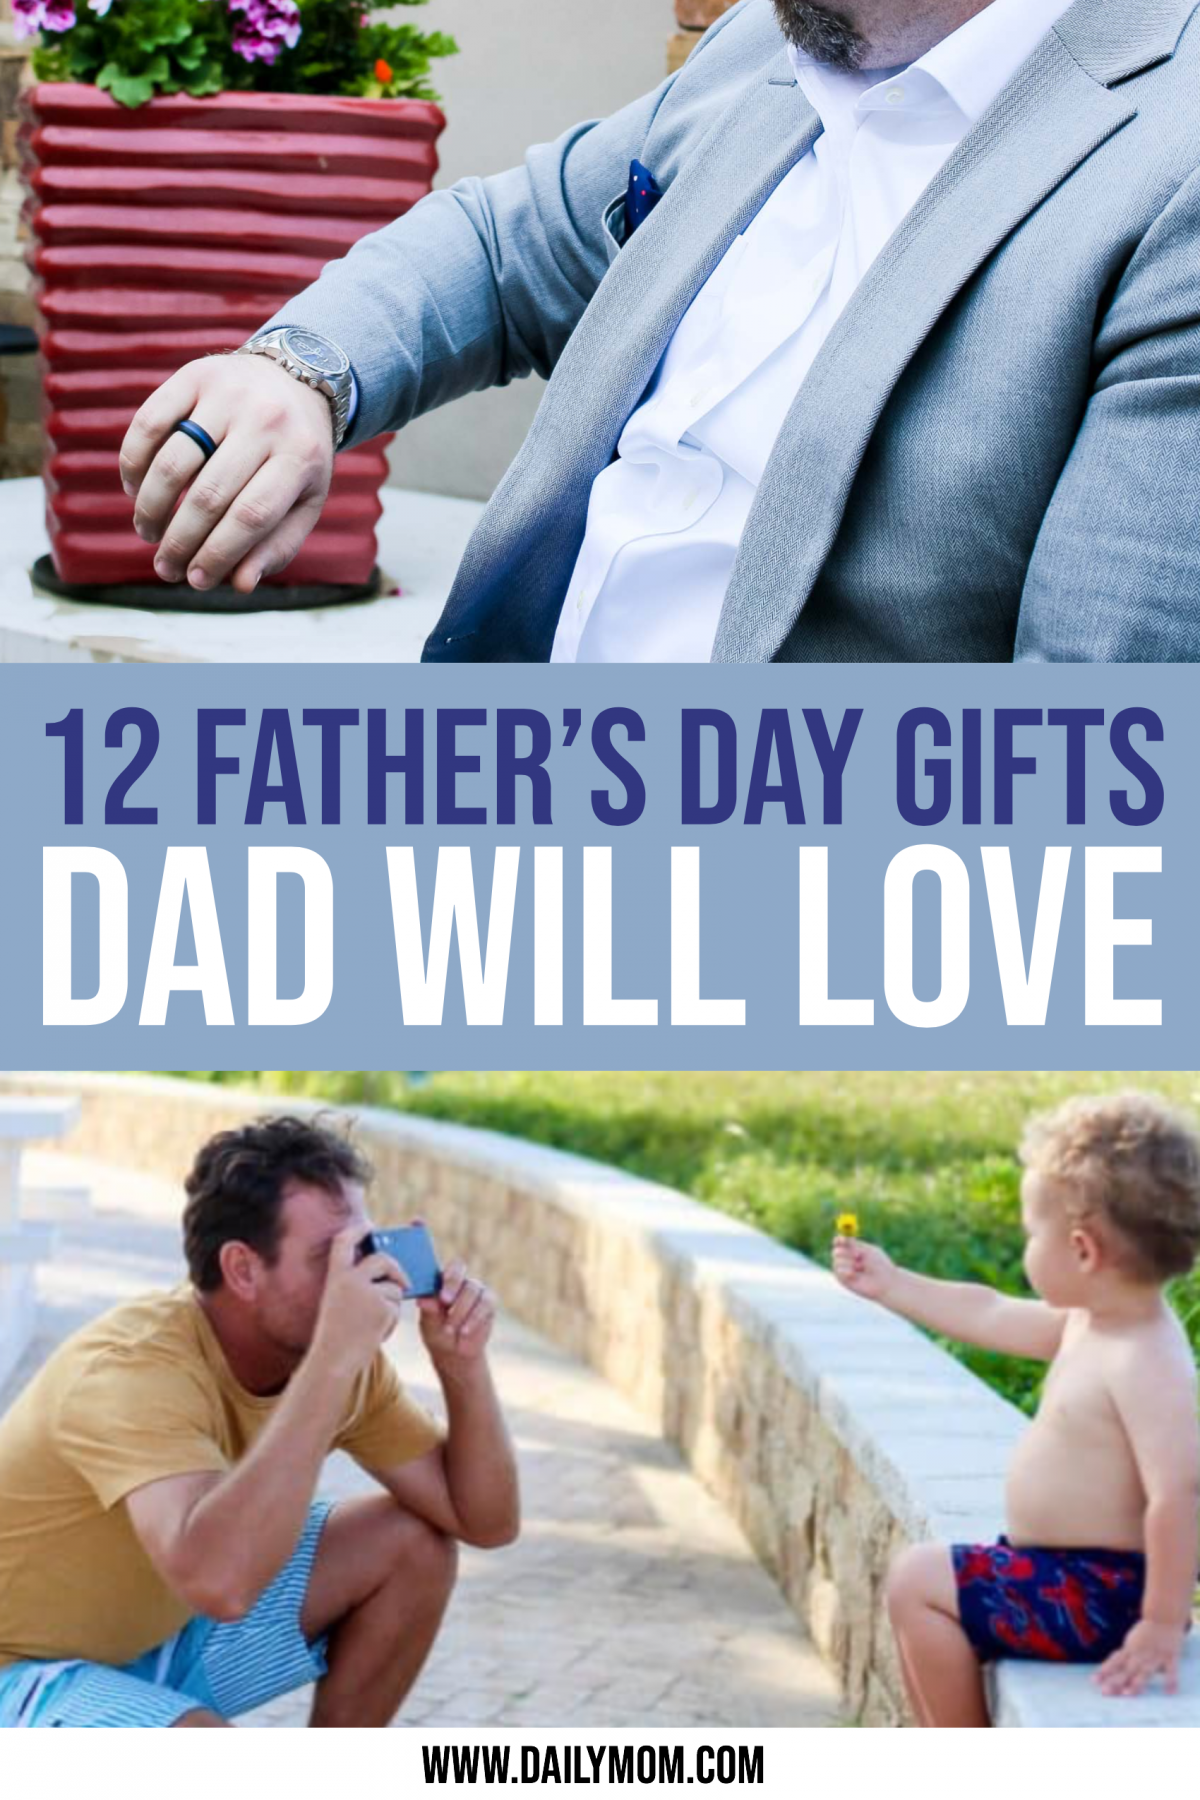 11 Cool Father's Day Gifts Dad Will Love